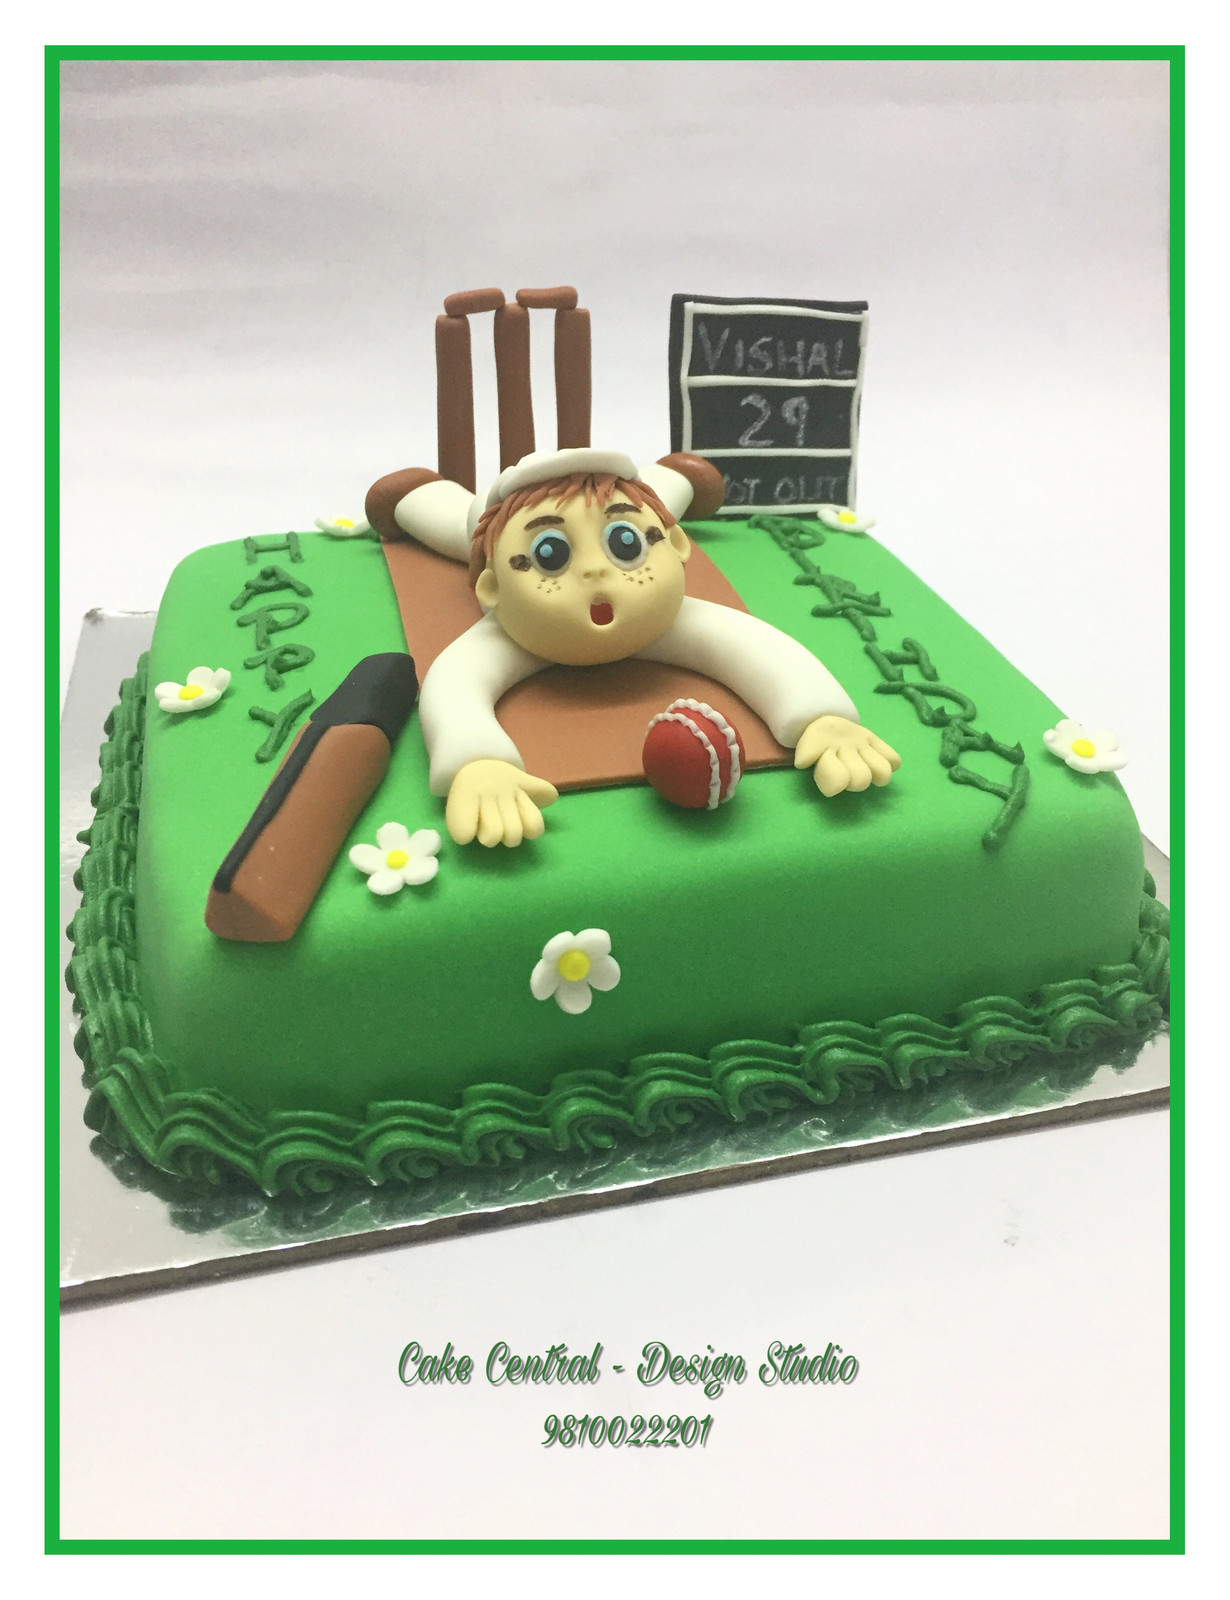 Cricket Themed Birthday Cake Delhi NCR